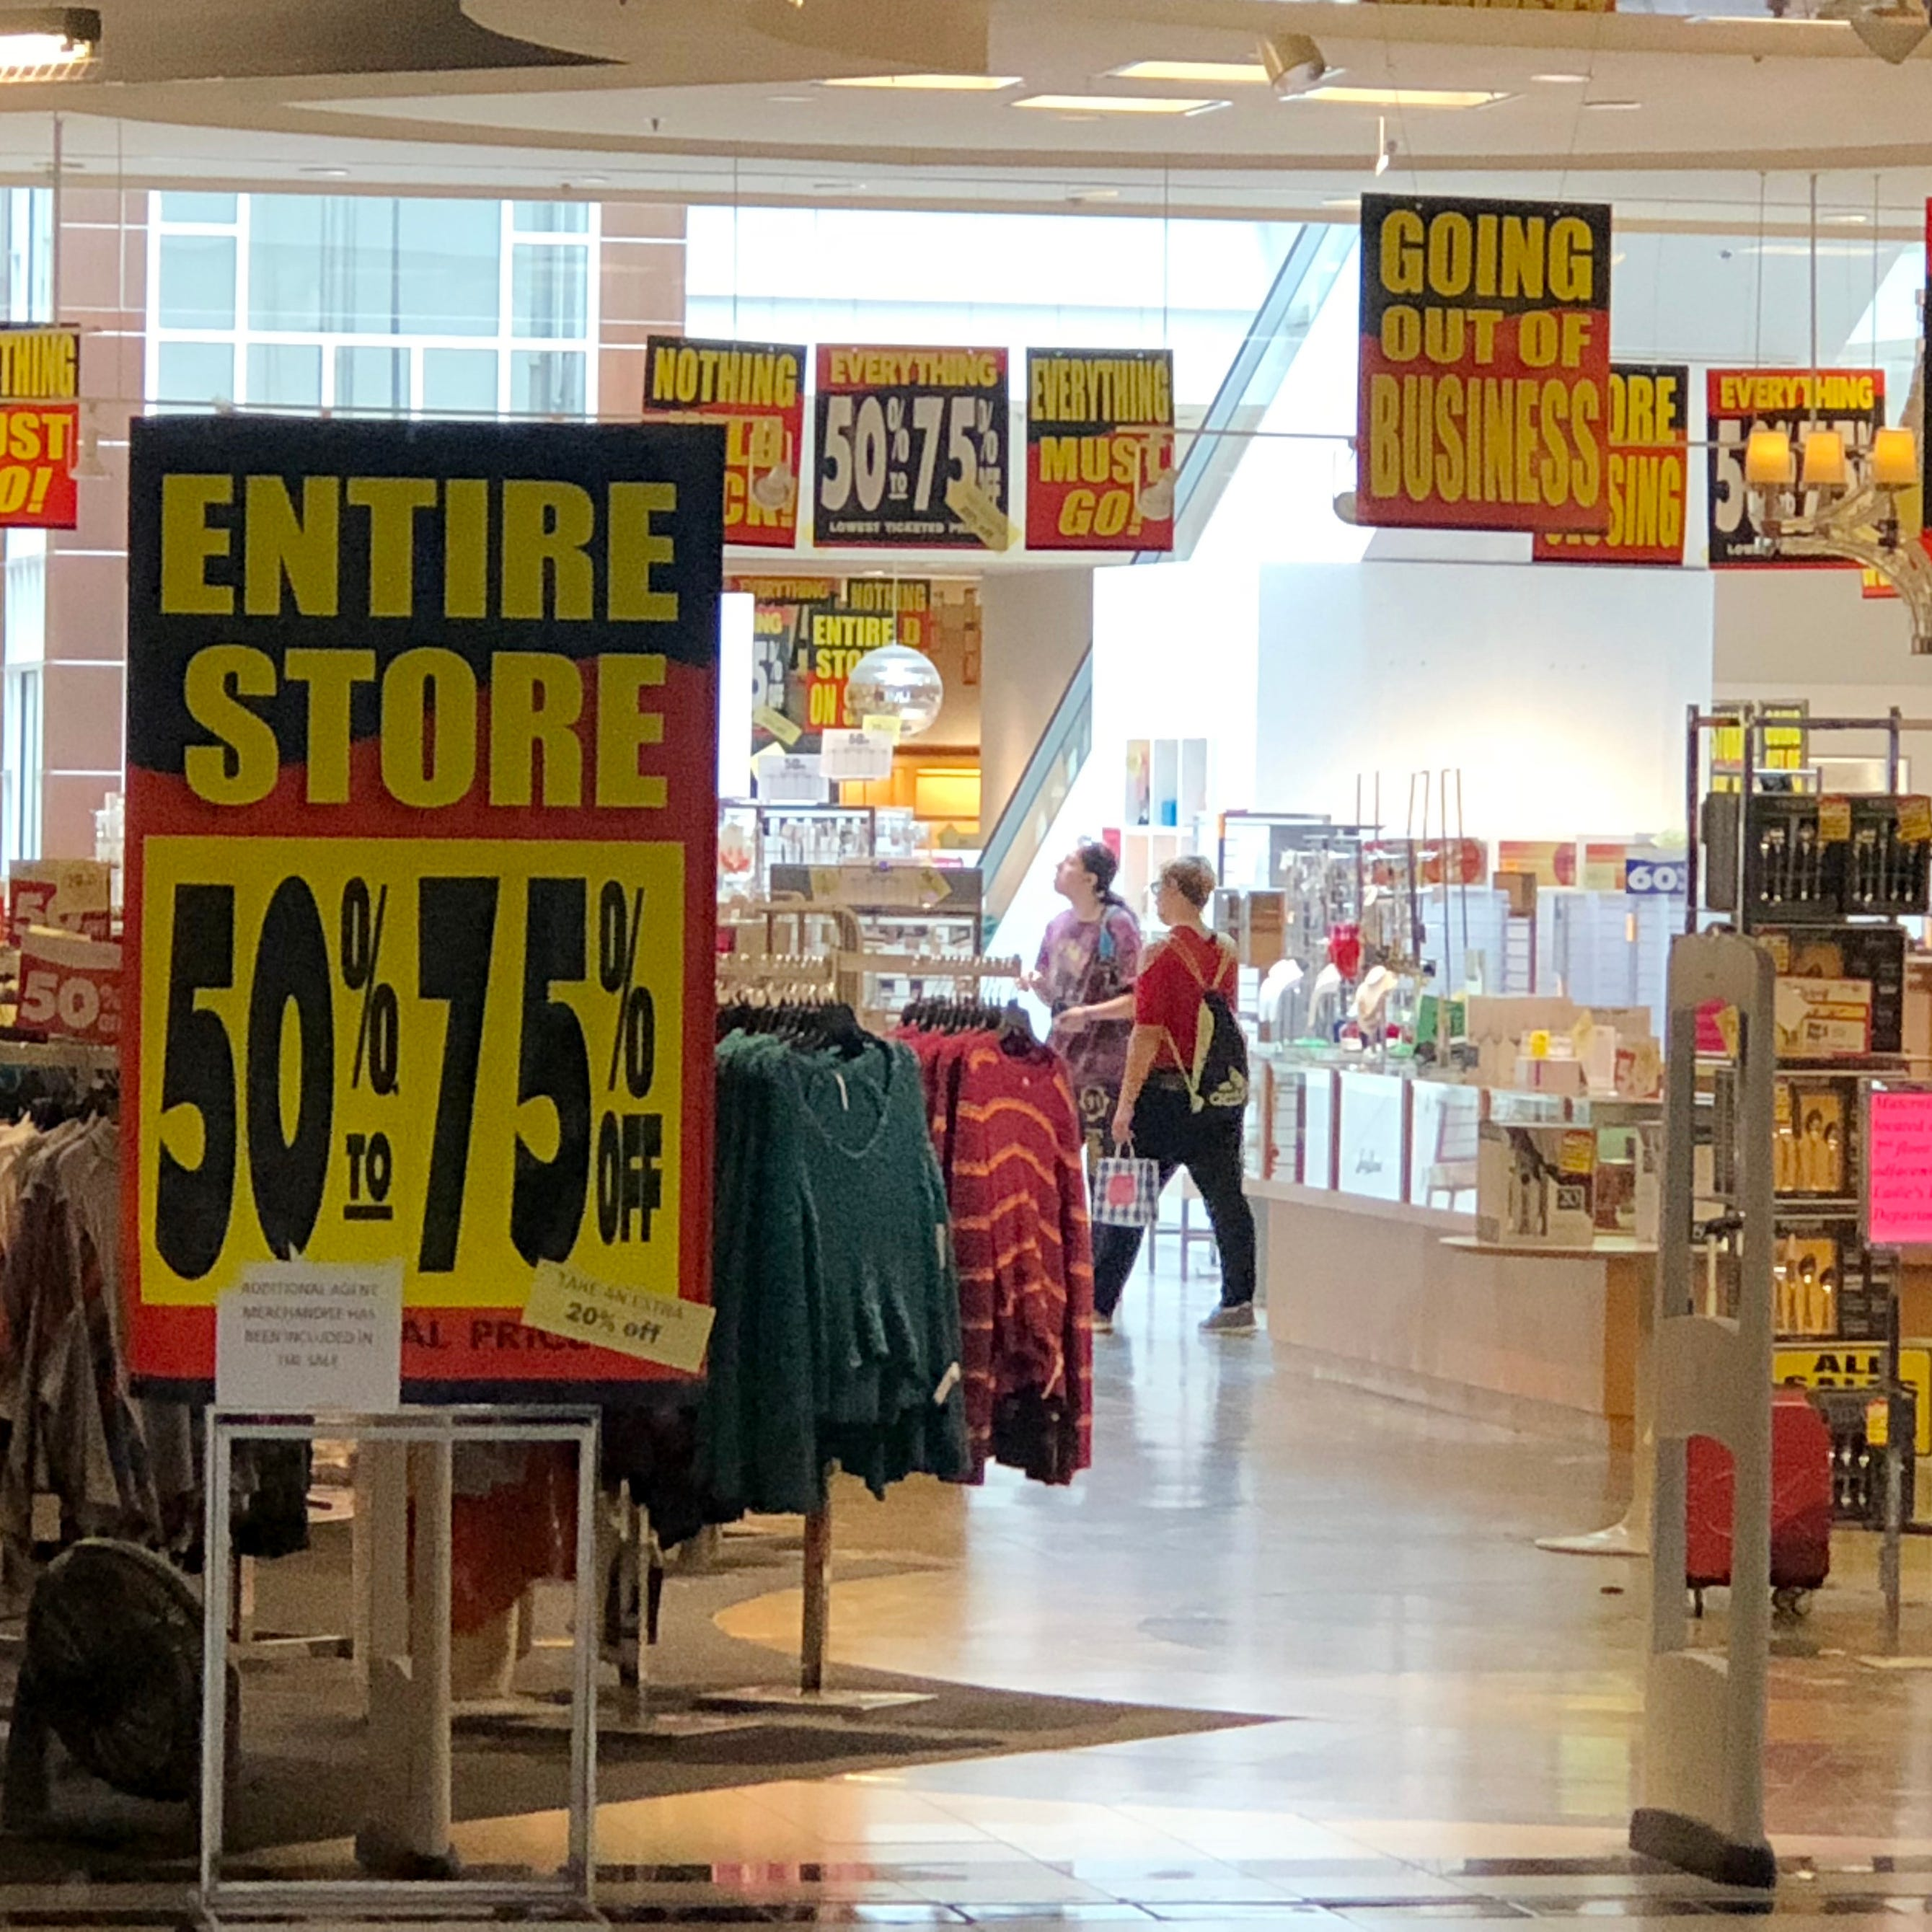 This soon-to-close Carson's has no A/C as workers, shoppers sweat